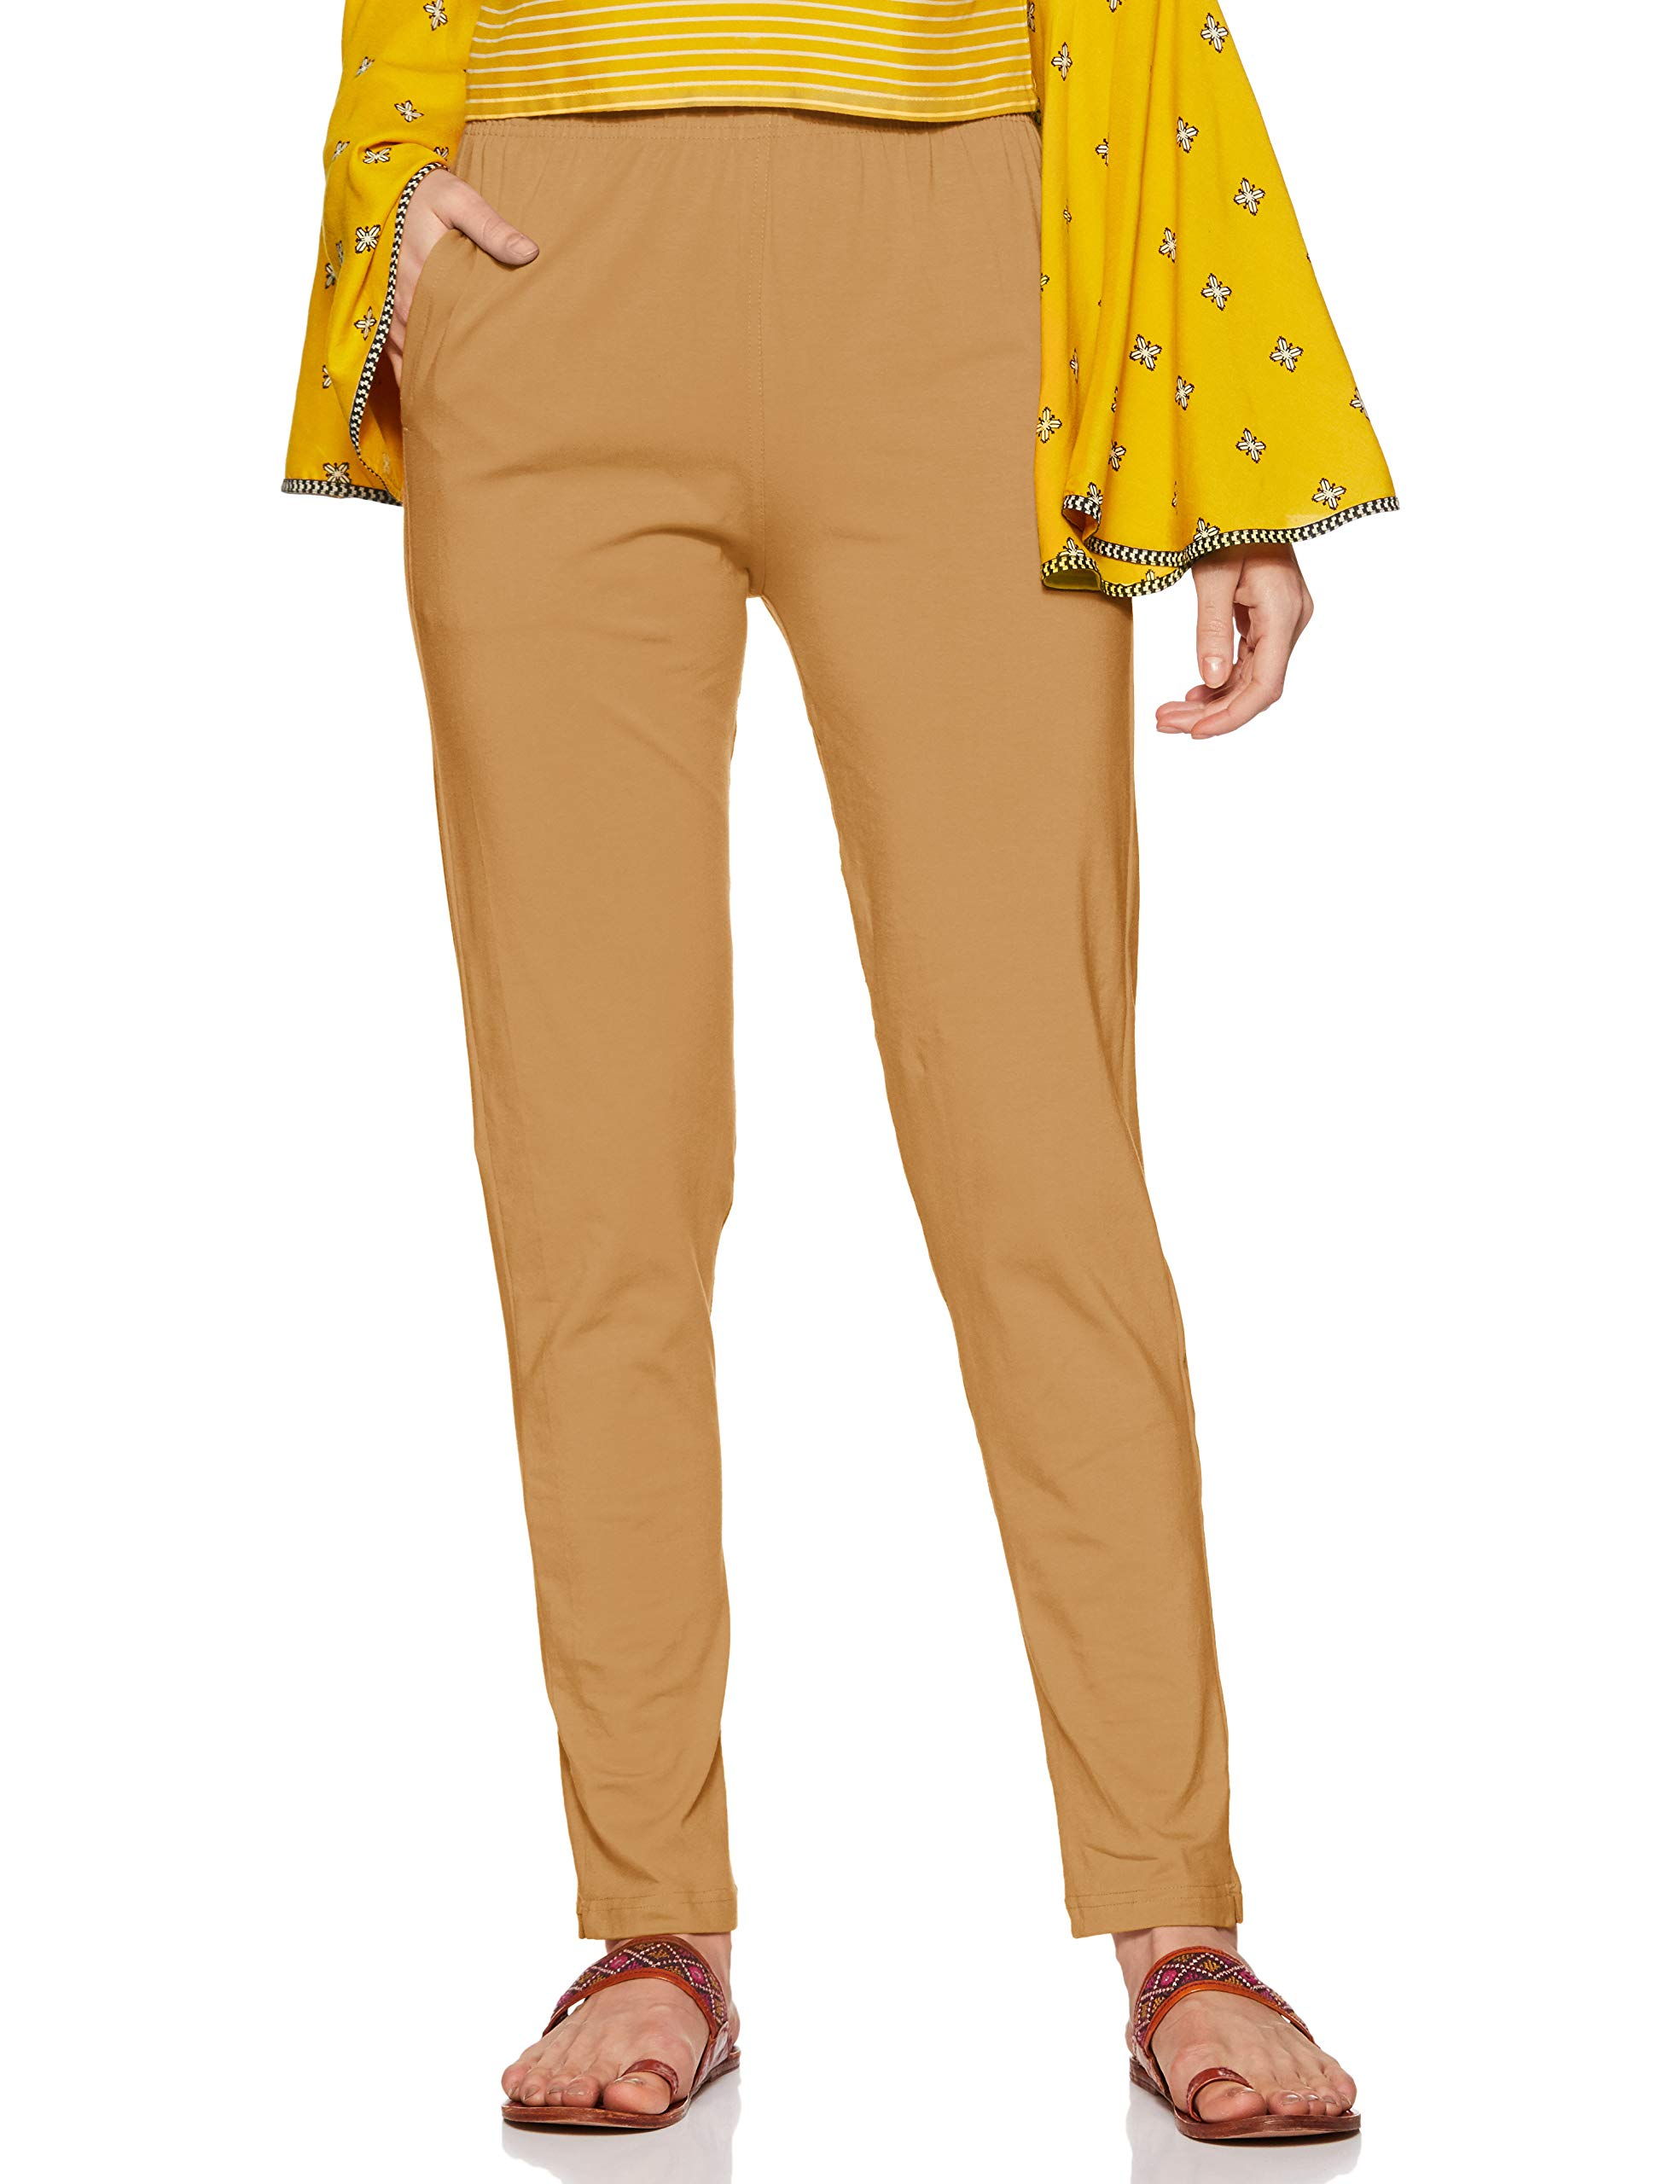 74fd132da2a188 Palazzo & Pants for Women at lowest prices from all over the world